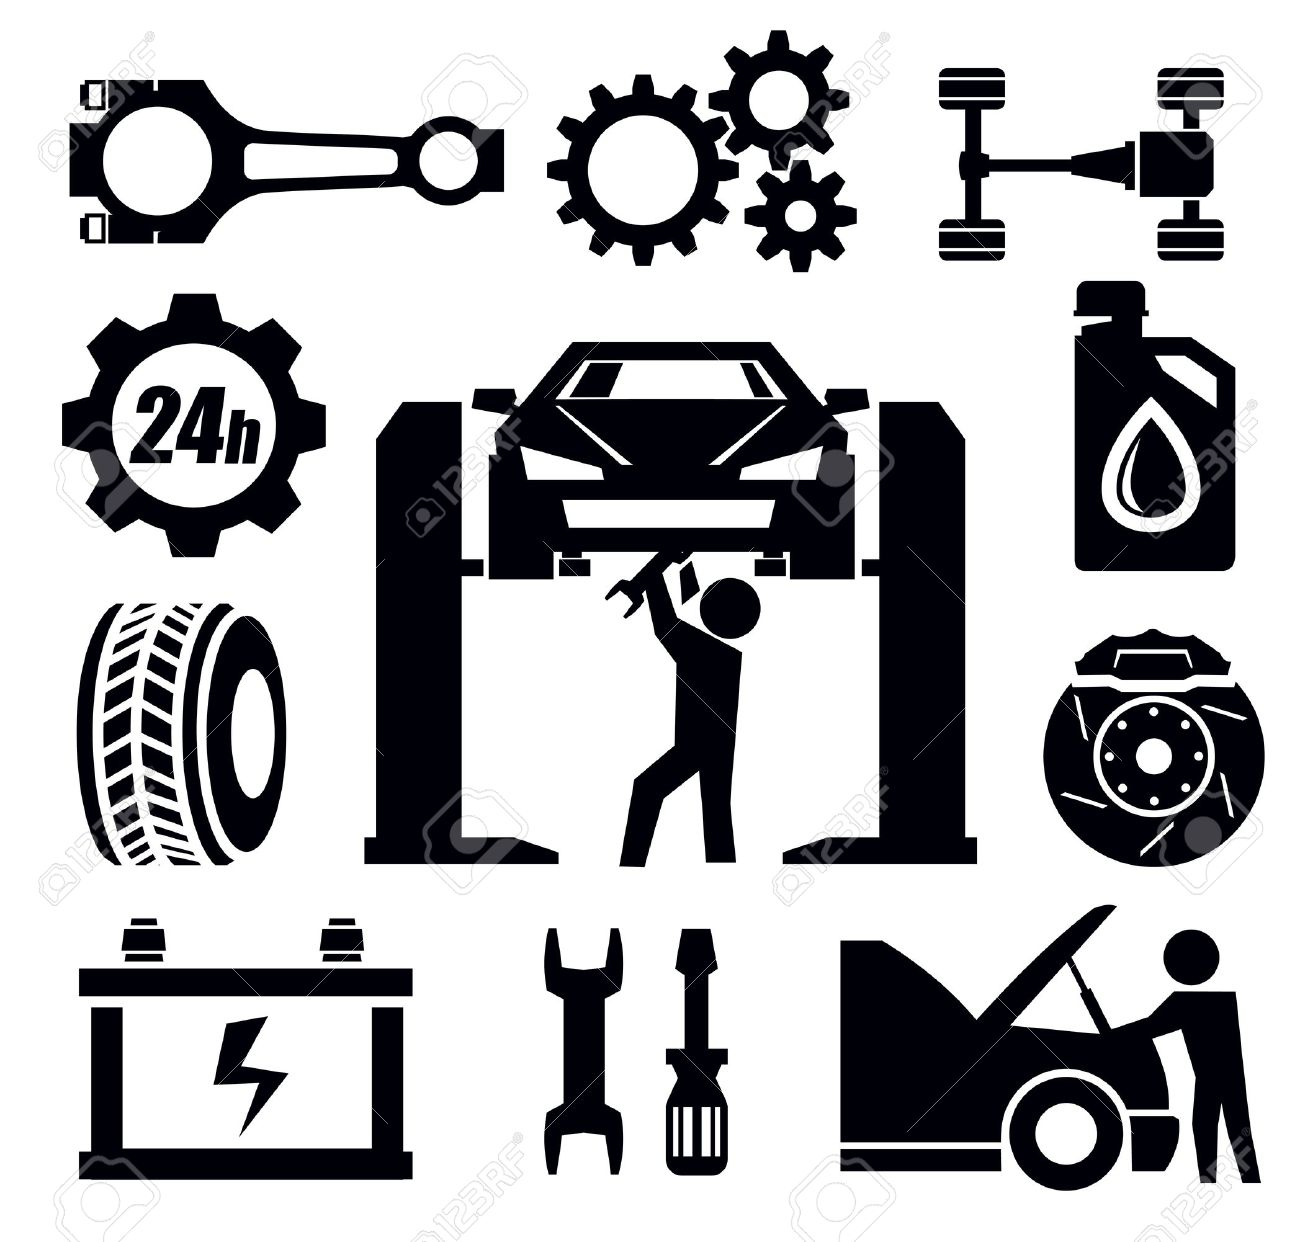 Auto Repair: Car Repair Icon-auto repair: car repair icon-3